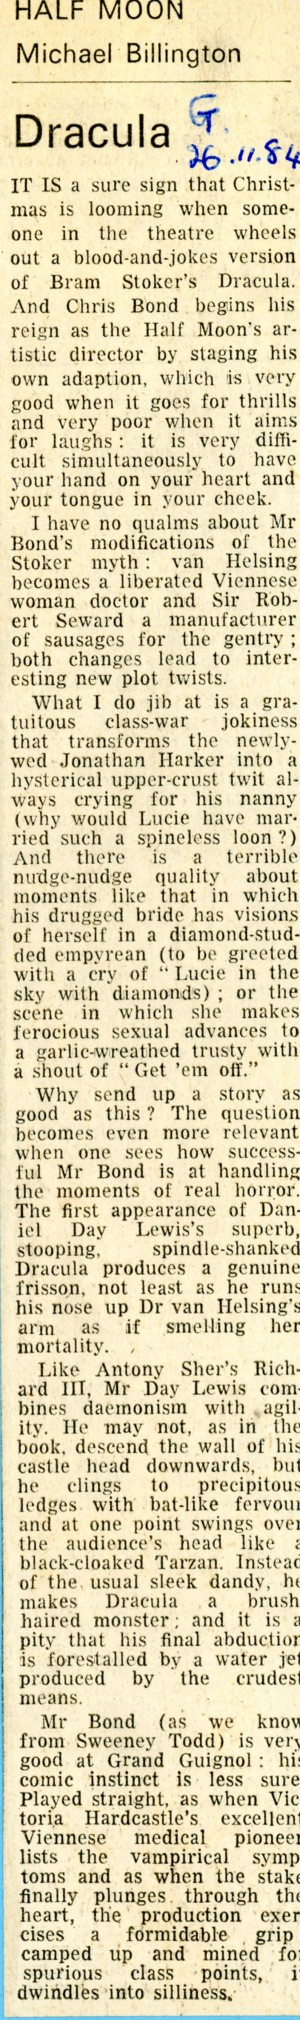 Dracula Review - Michael Billington - The Guardian - 26th Nov 1984